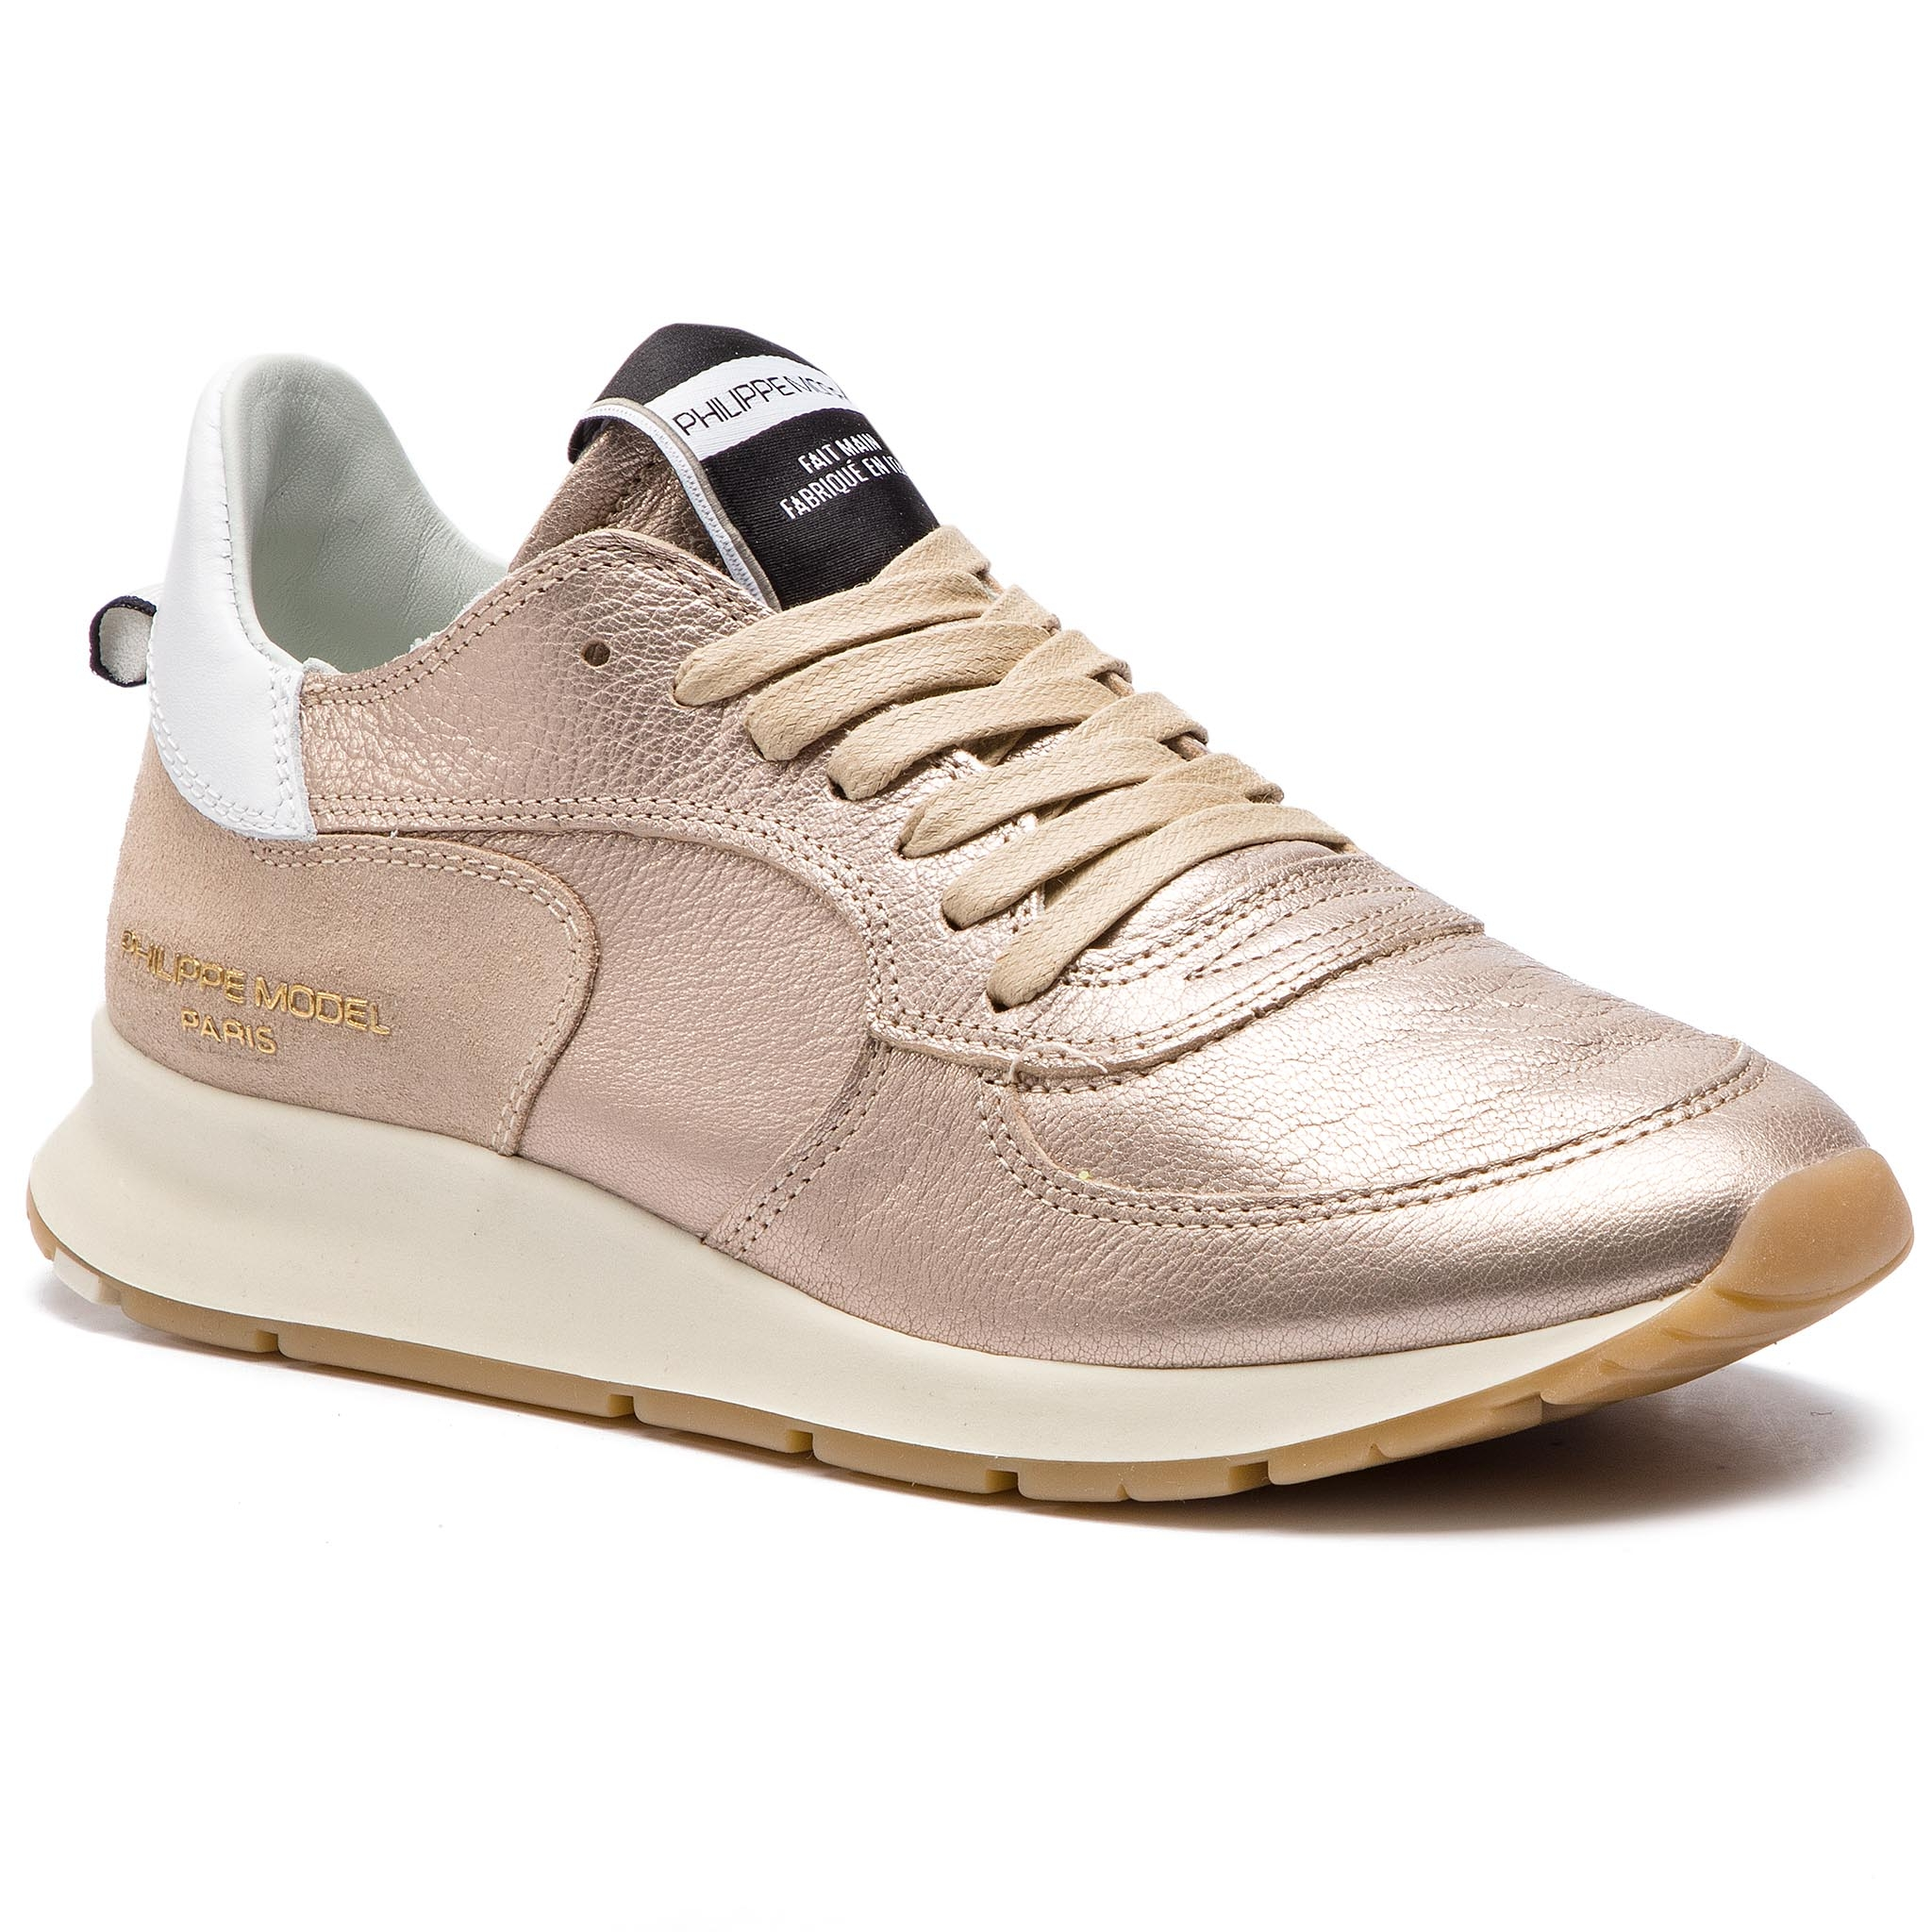 Sneakers PHILIPPE MODEL - Montecarlo NTLU M001 Metal Or Rose